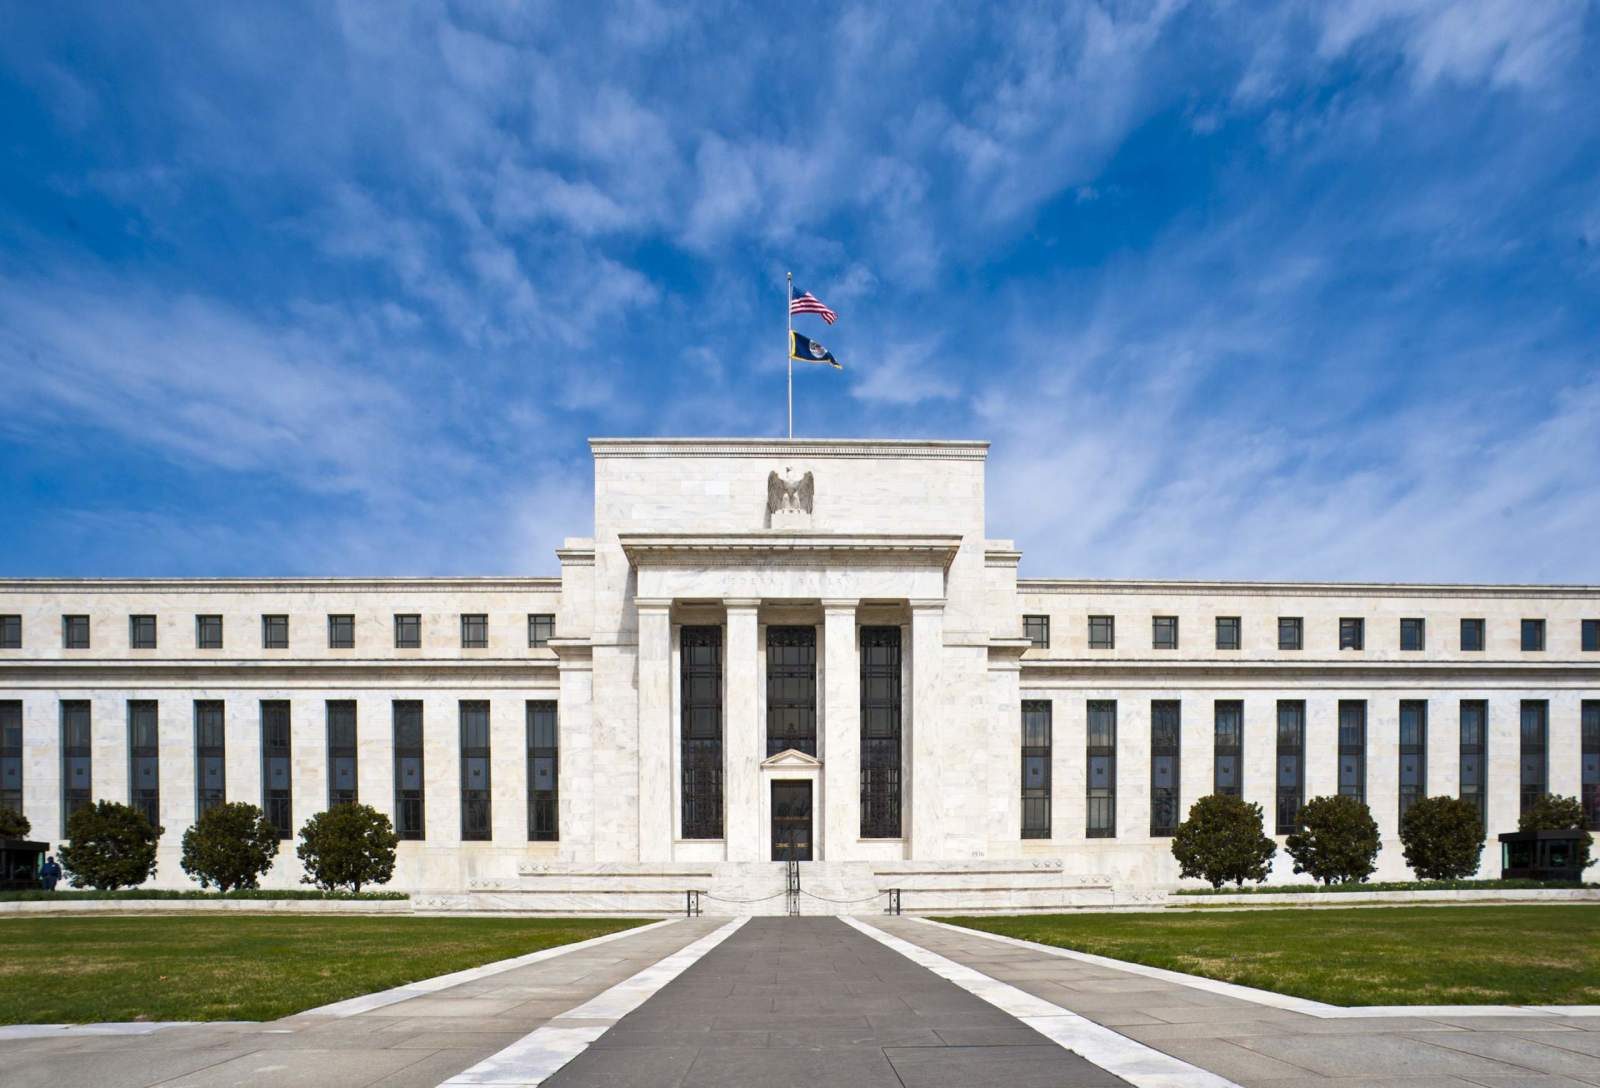 Federal Reserve in Washington DC - Zinssenkung voraus?